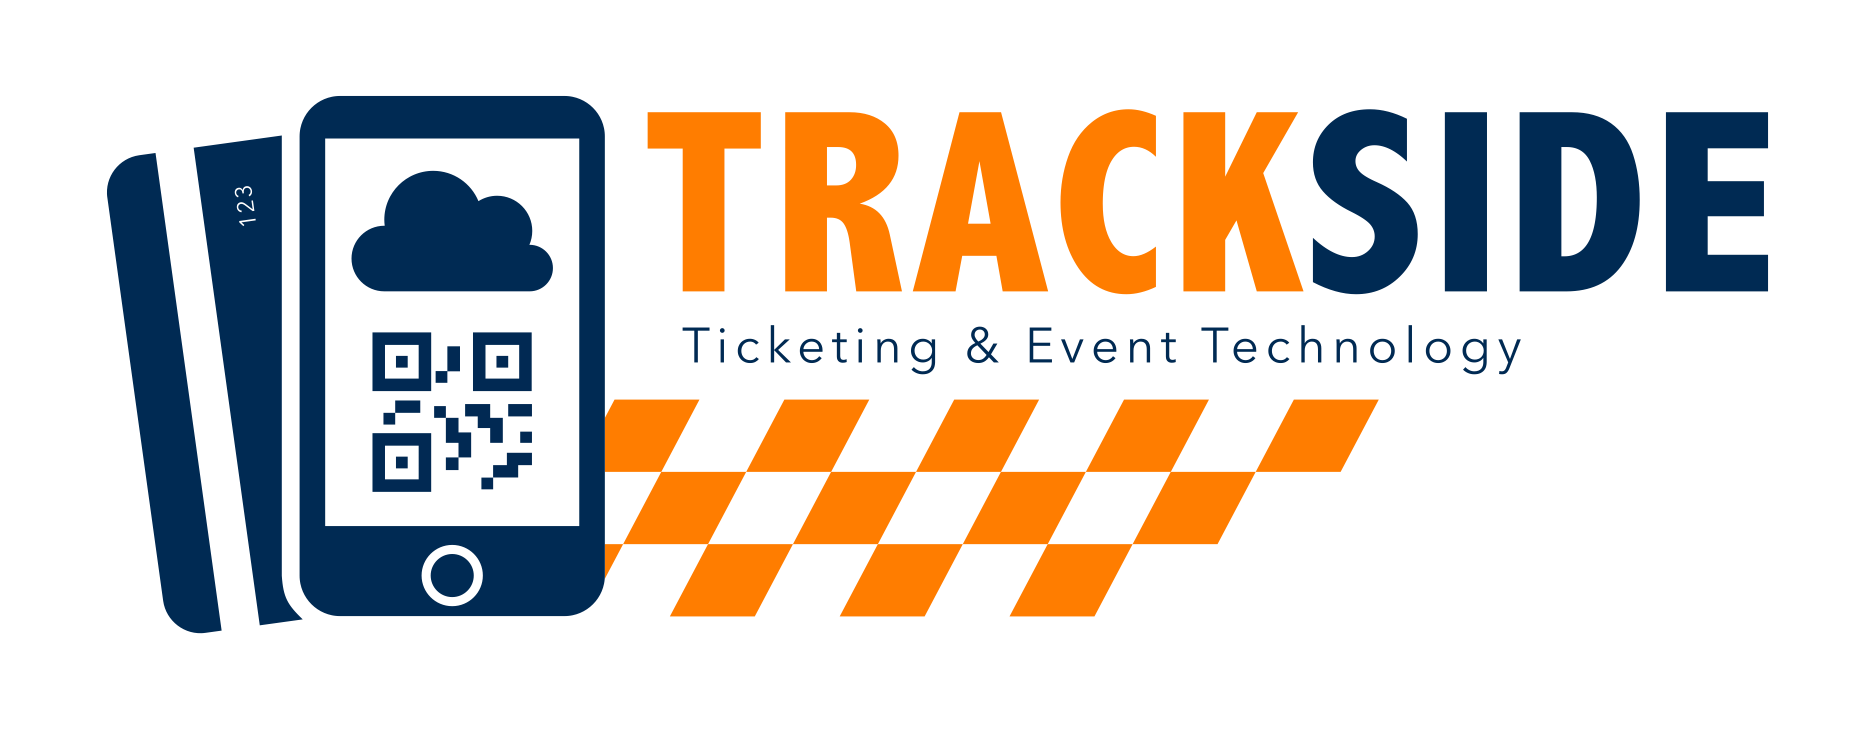 Trackside logo